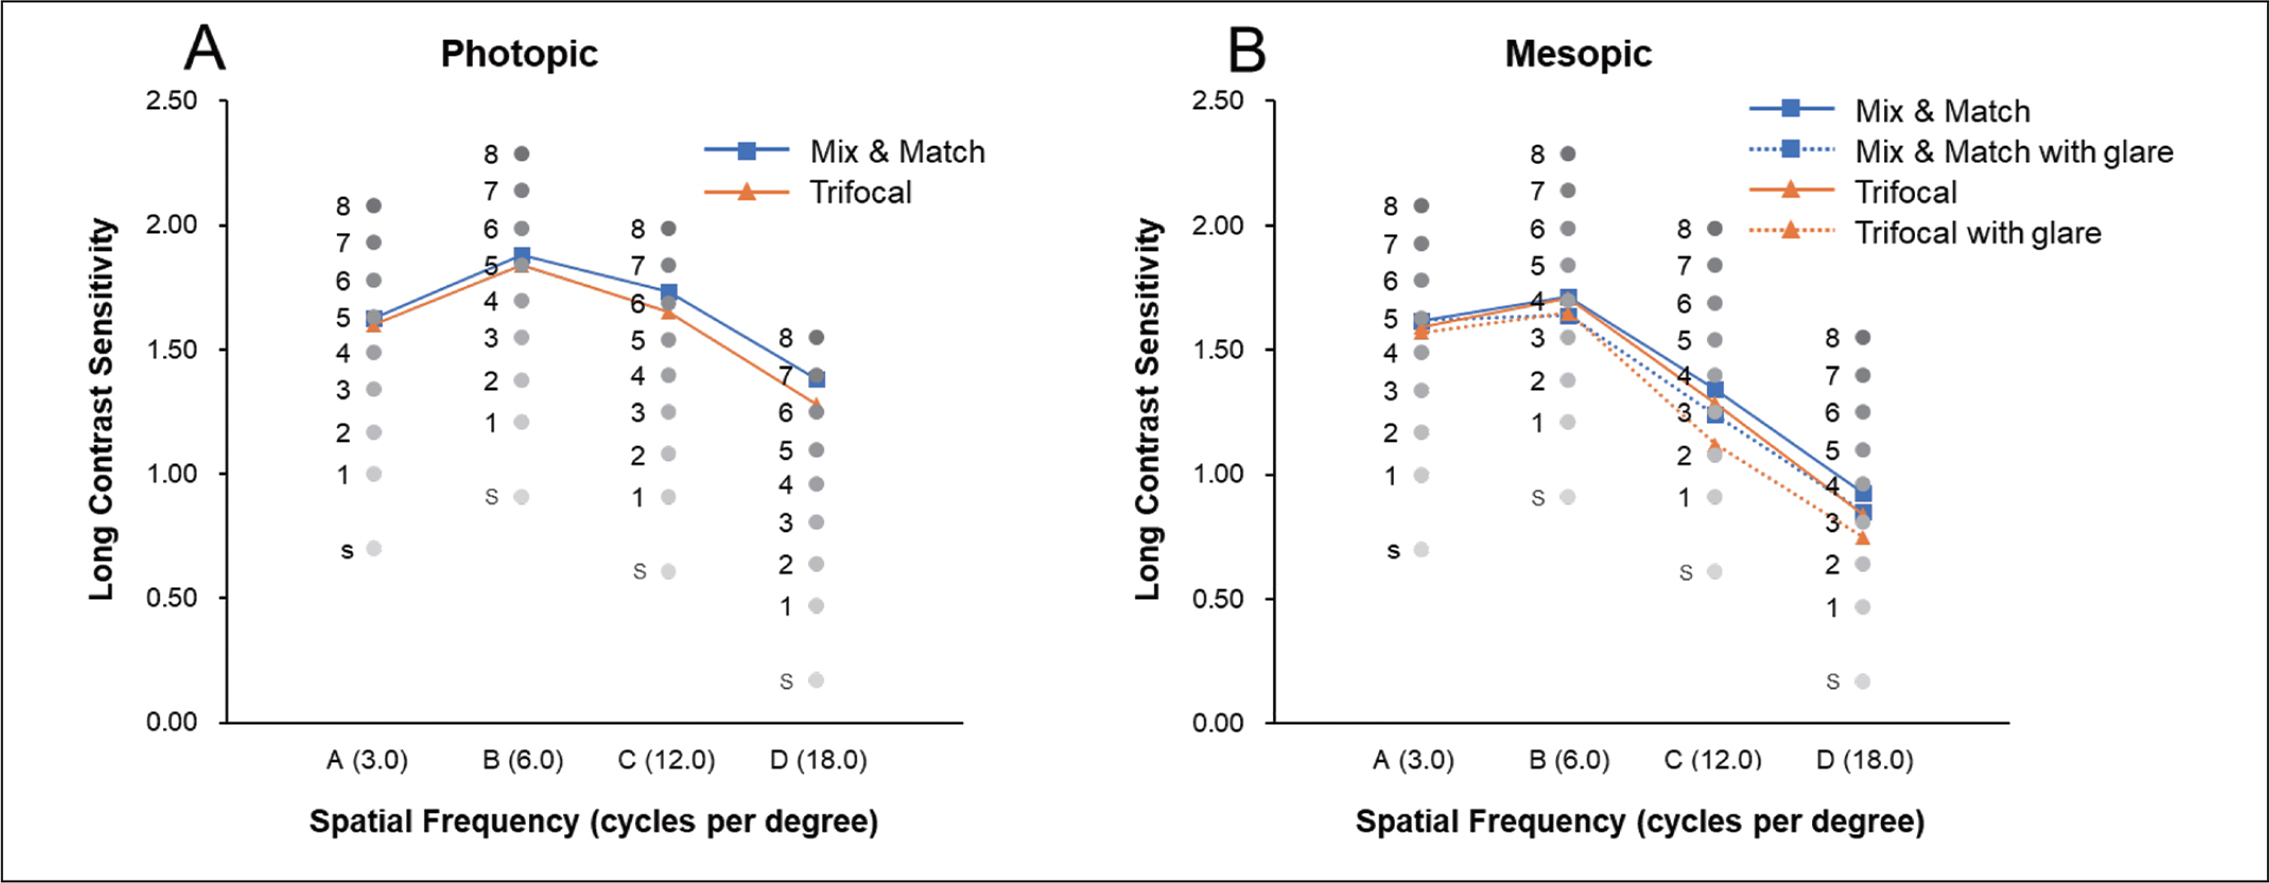 Mean binocular contrast sensitivity function in the mix-and-match group and the trifocal group under (A) photopic and (B) mesopic conditions with and without glare.